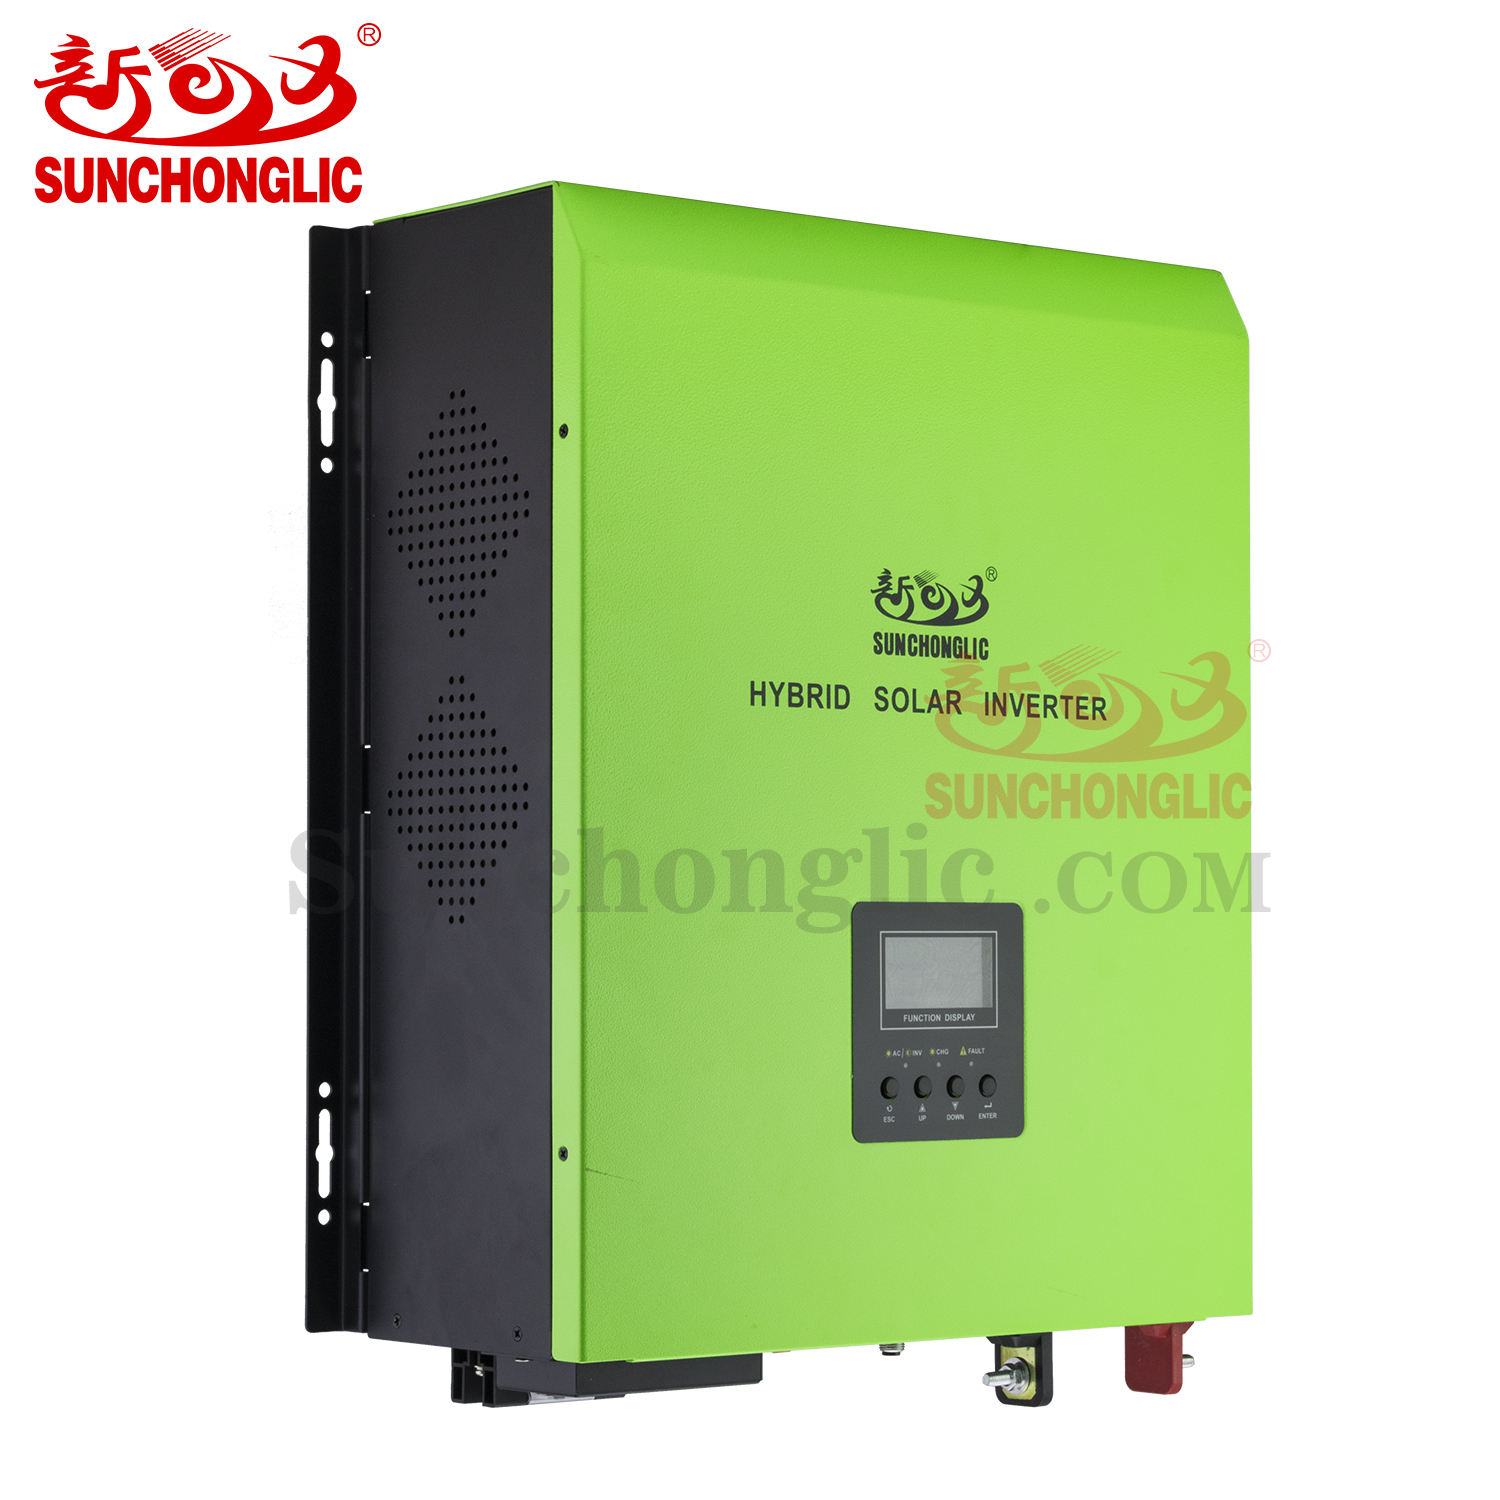 Inverter With Solar Charger Sunchonglic 48v 5kva 3000w Pure Sine Wave 60A Mppt Hybrid Solar Inverter With 30A AC Charger